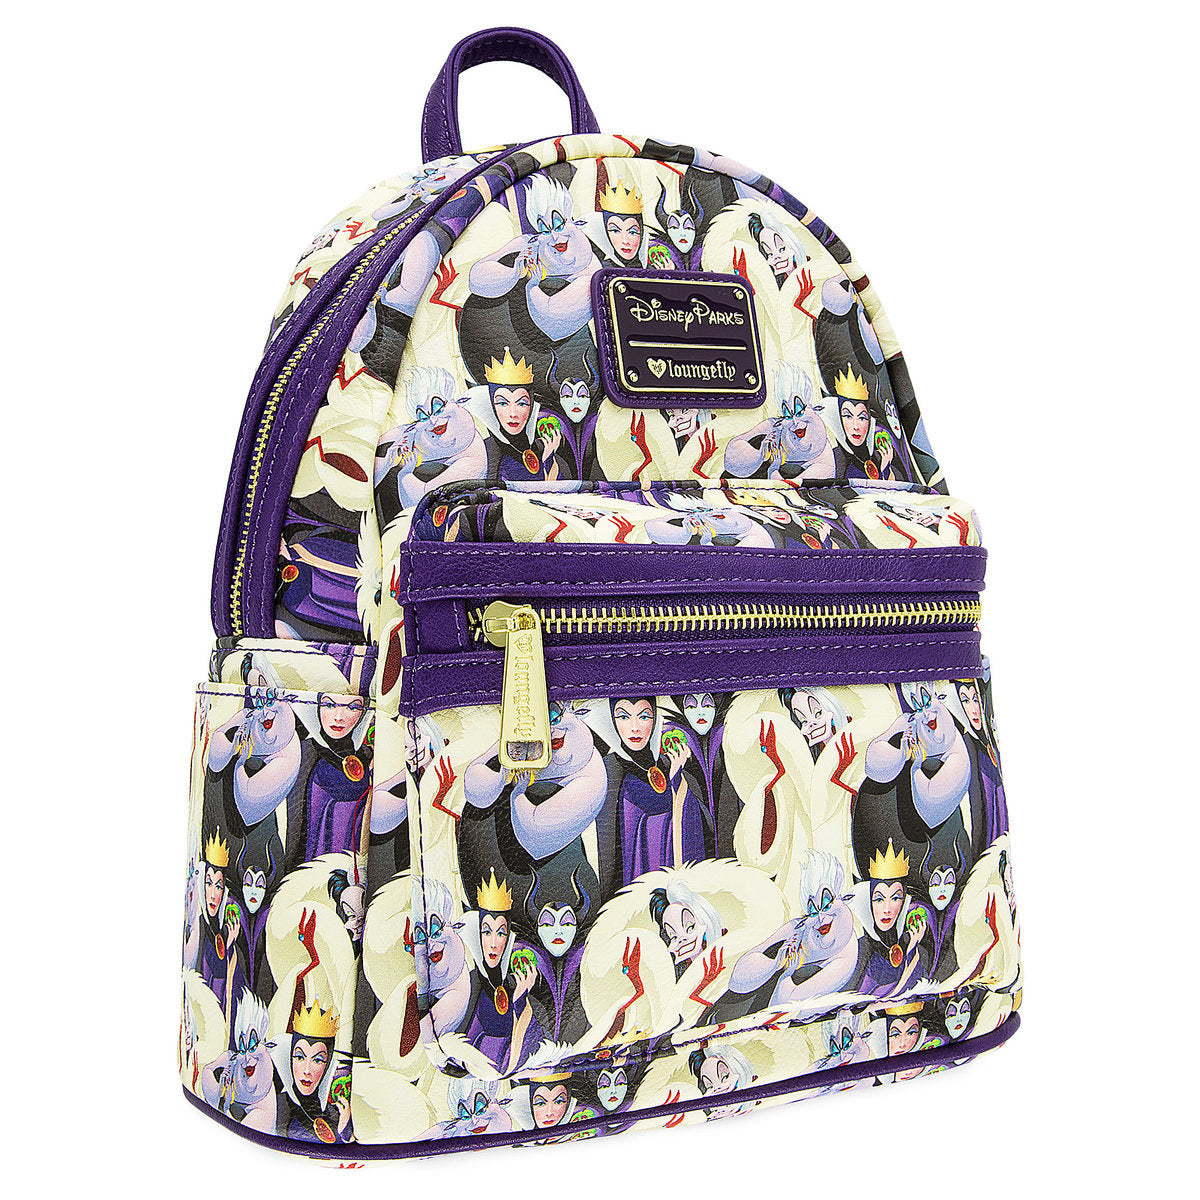 df8e4b86ee8 Disney Villains Mini Backpack by Loungefly New with Tags – I Love ...